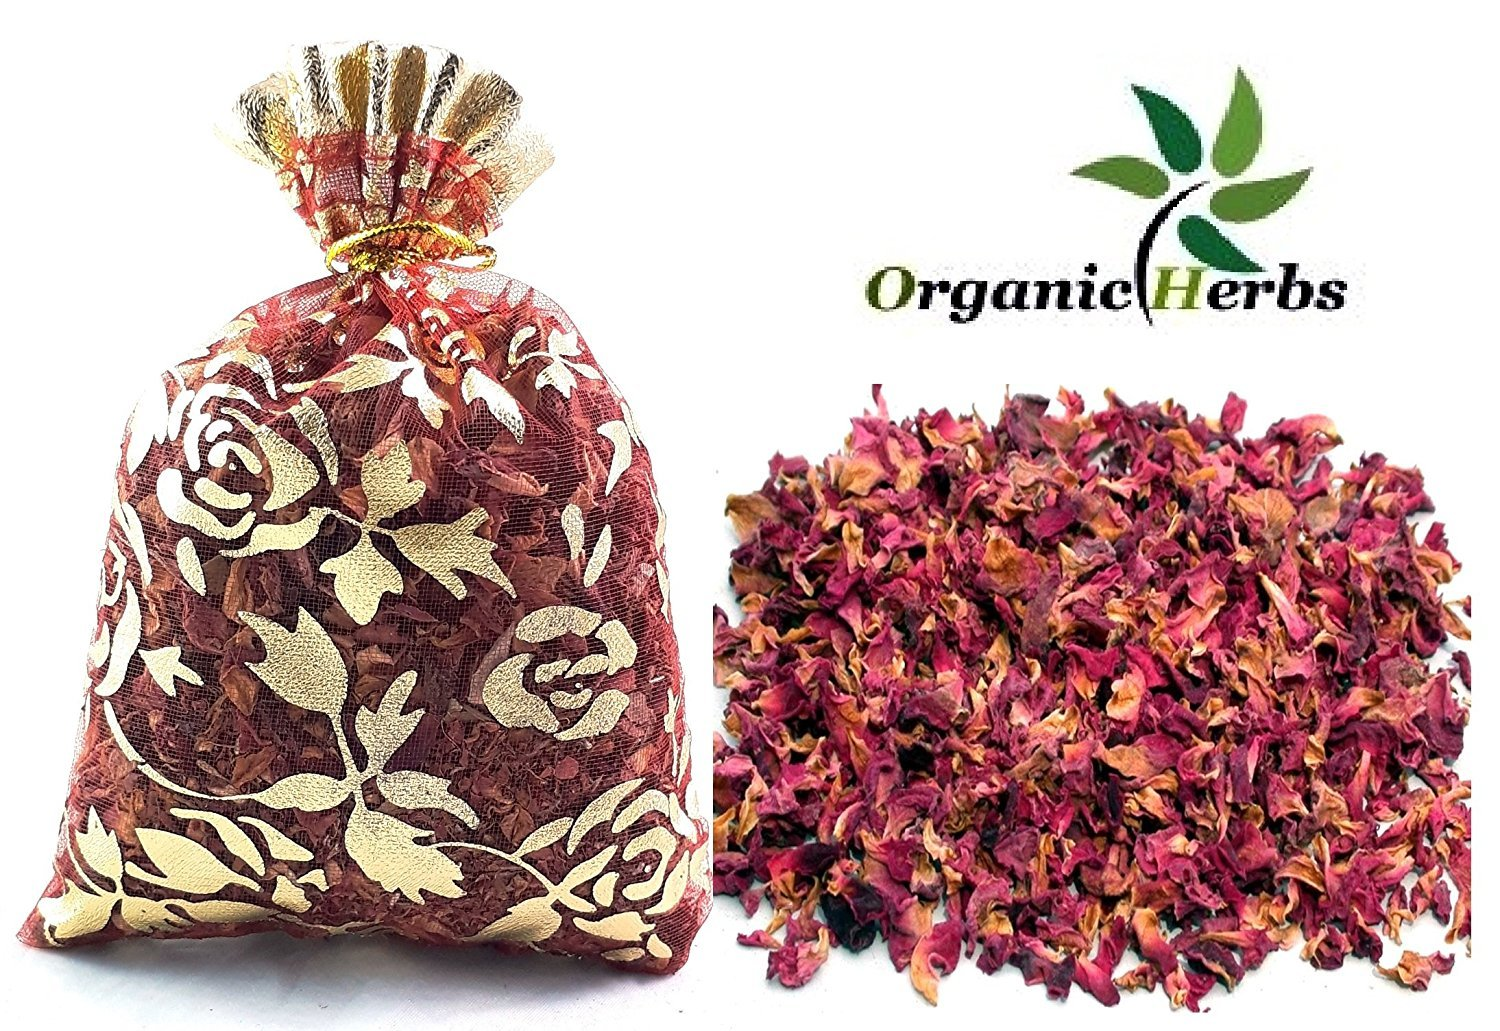 Organic Herbs (Pack of 50) 2x10g DRIED ROSE PETALS Potpourri Decor Organic Herbal Craft Car Perfume by Organic Herbs